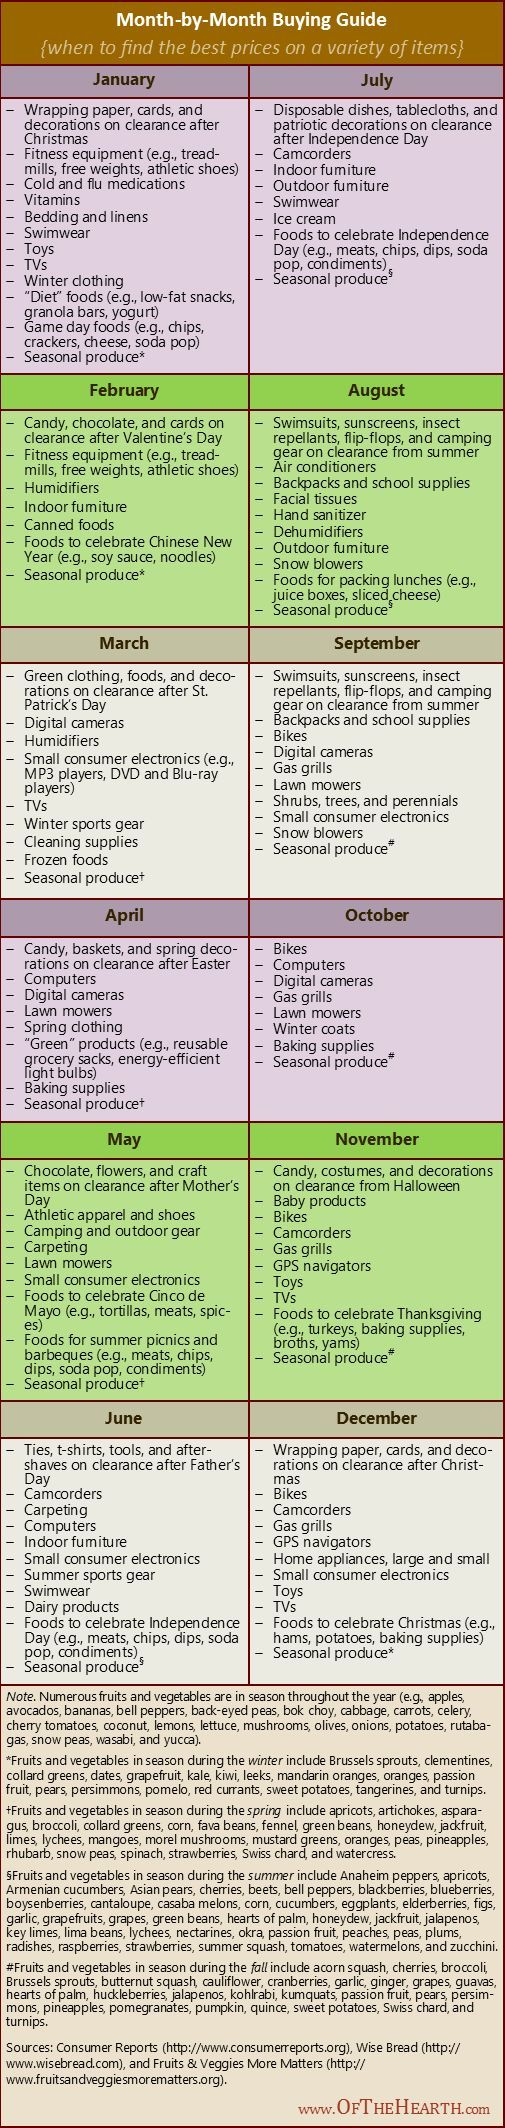 Month-by-Month Buying Guide | The prices on many products fluctuate throughout the year. Here's a handy month-by-month buying guide to help you know when to find the best prices on items, thereby being better stewards of the financial resources with which God has blessed you.